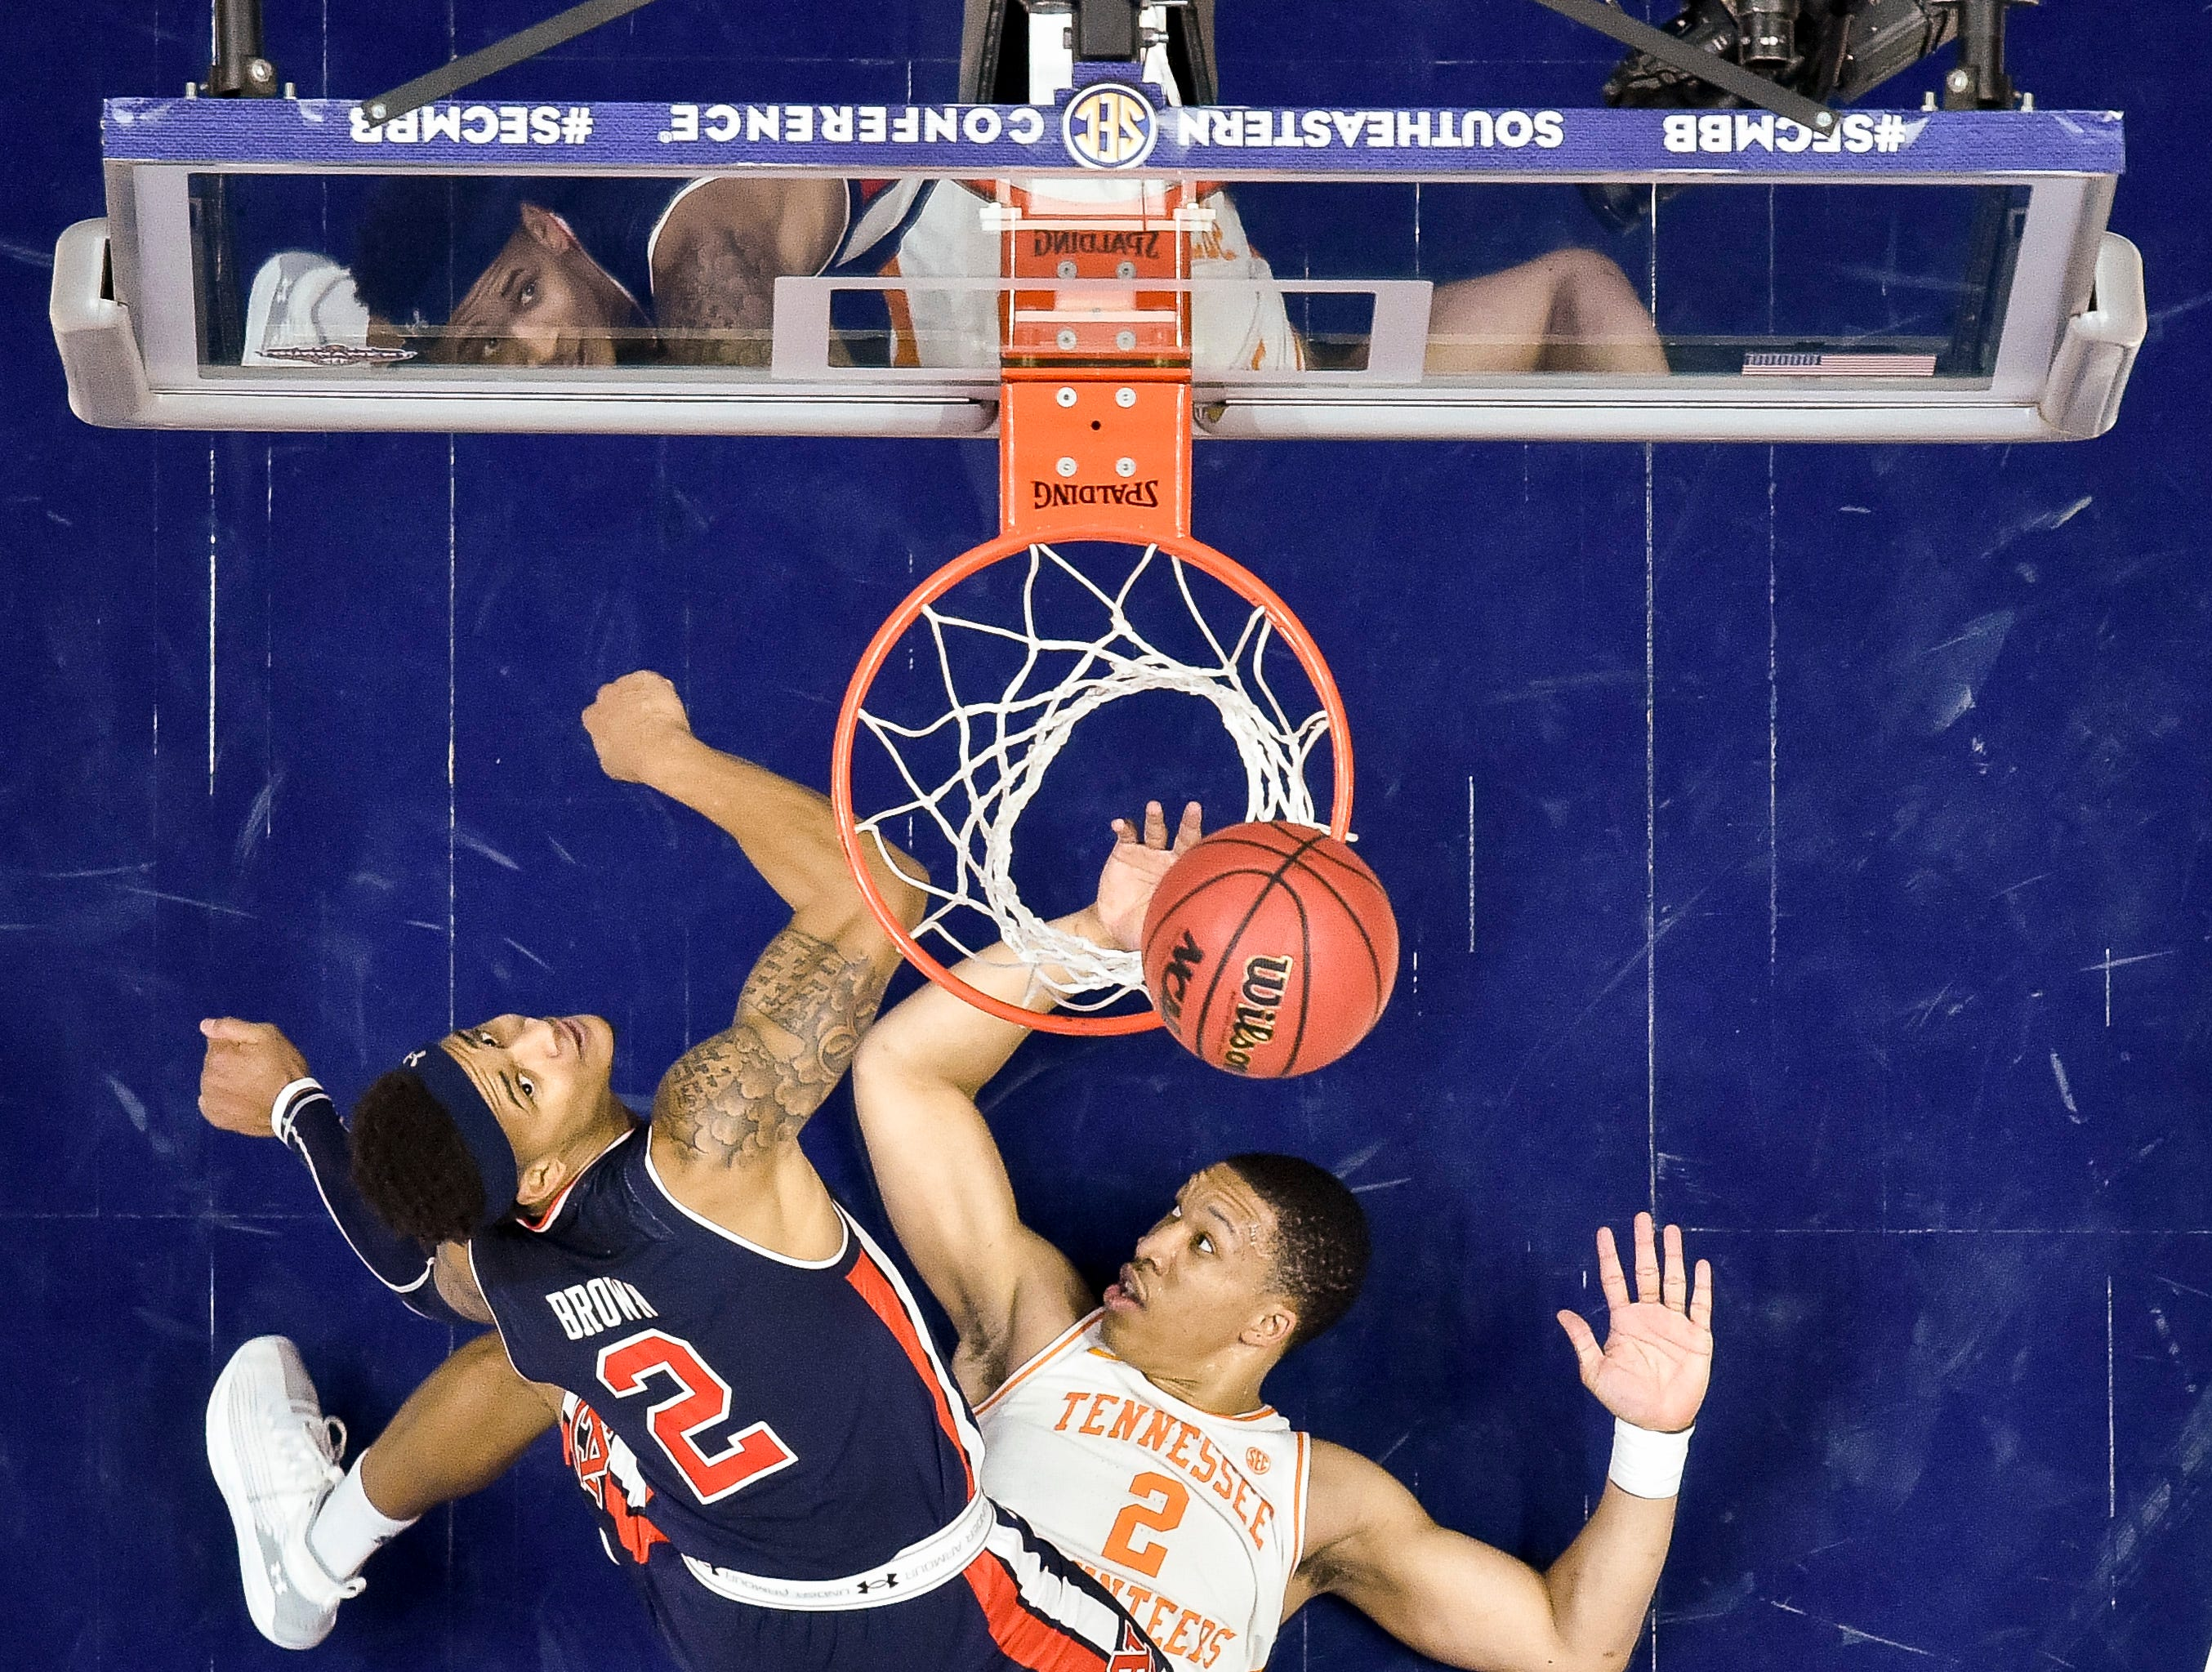 Auburn guard Bryce Brown (2) watches his shot miss the net over Tennessee forward Grant Williams (2) during the second half of the SEC Men's Basketball Tournament championship game at Bridgestone Arena in Nashville, Tenn., Sunday, March 17, 2019.